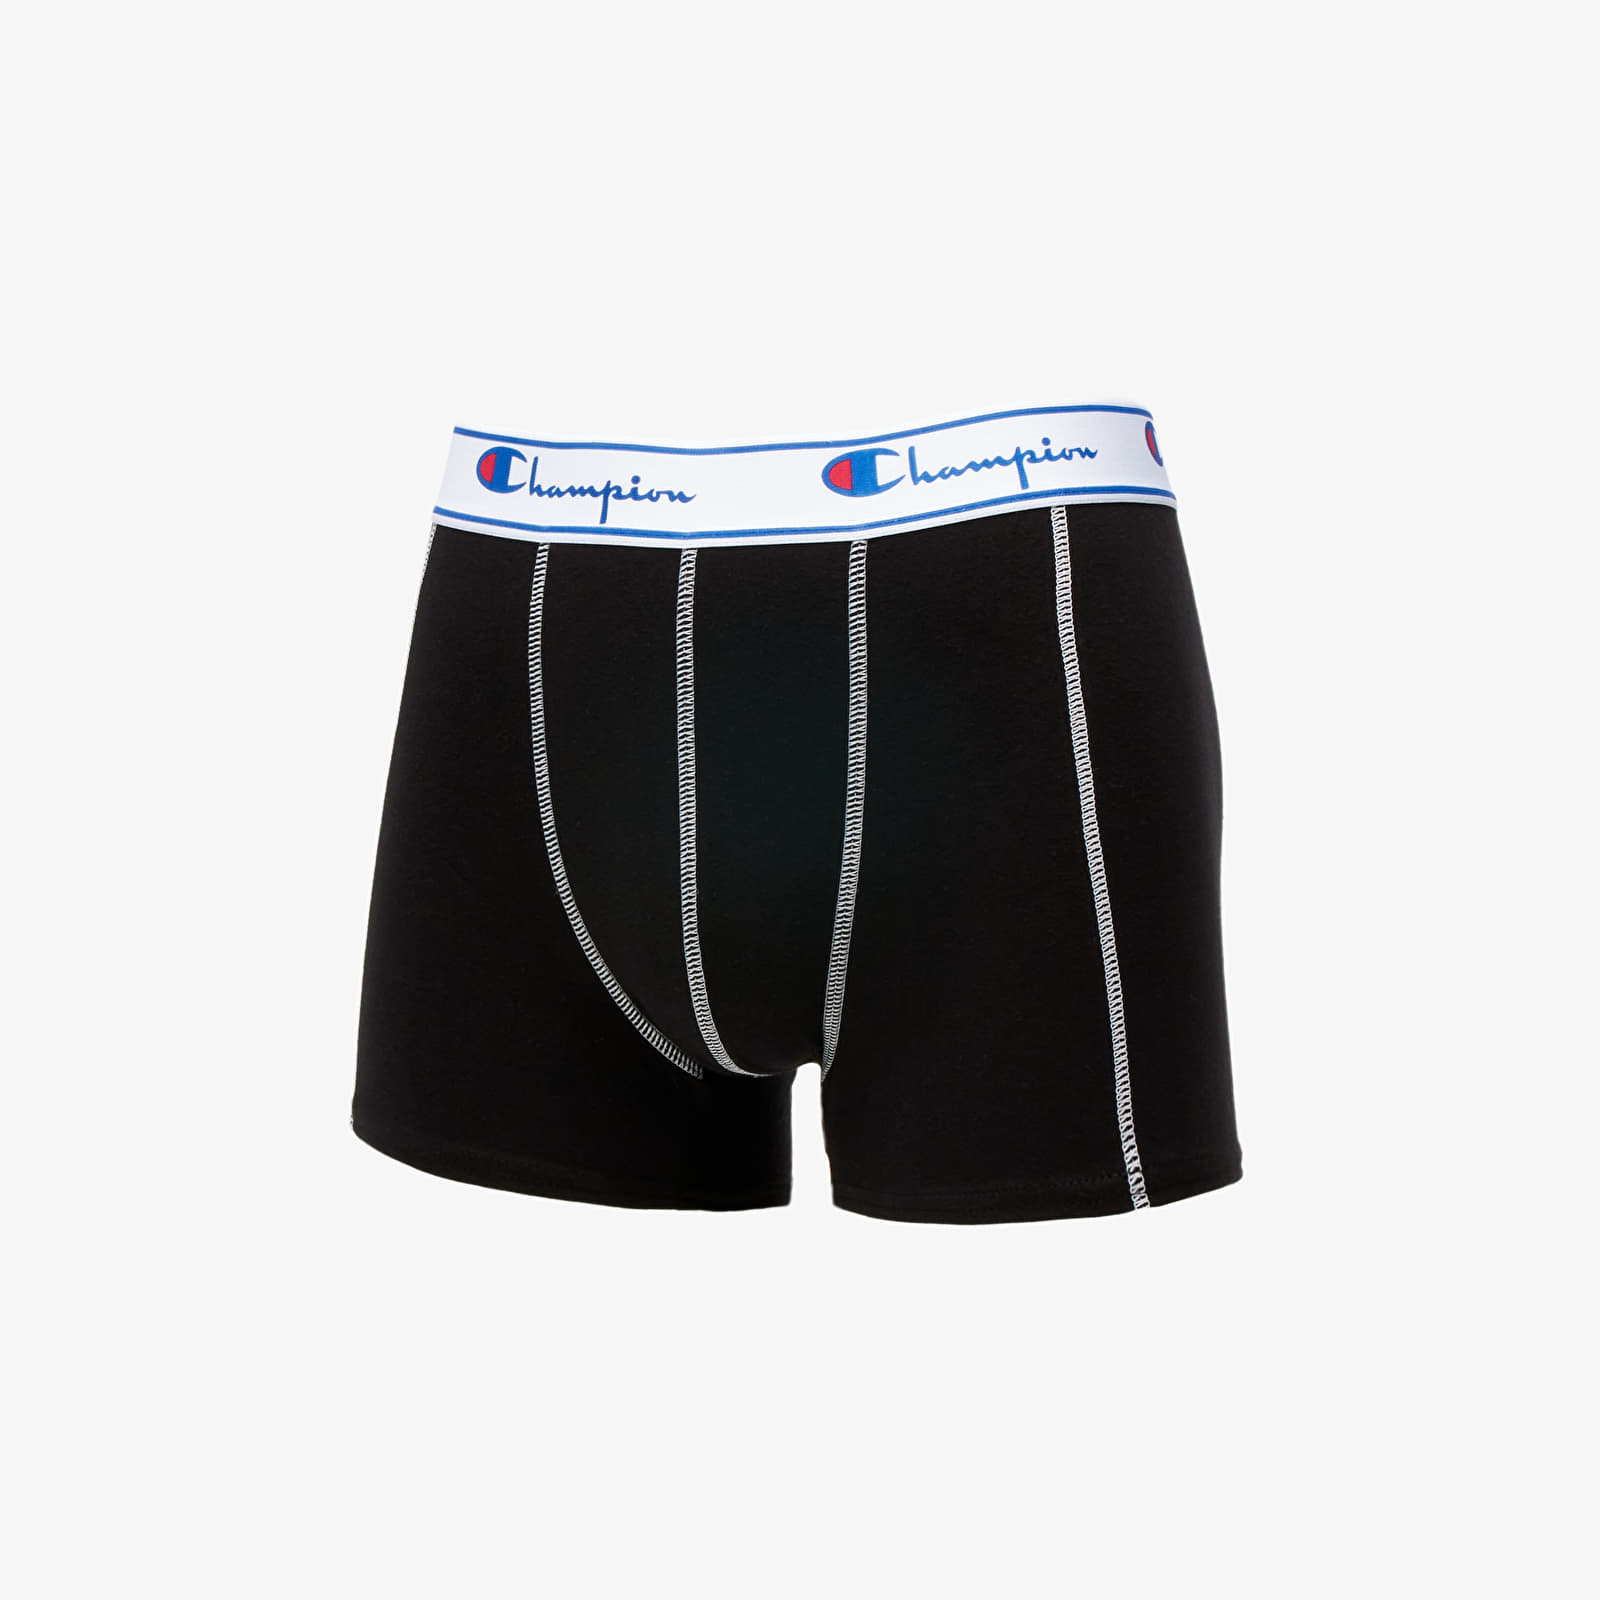 Boxershorts Champion 3-Pack Boxers Black